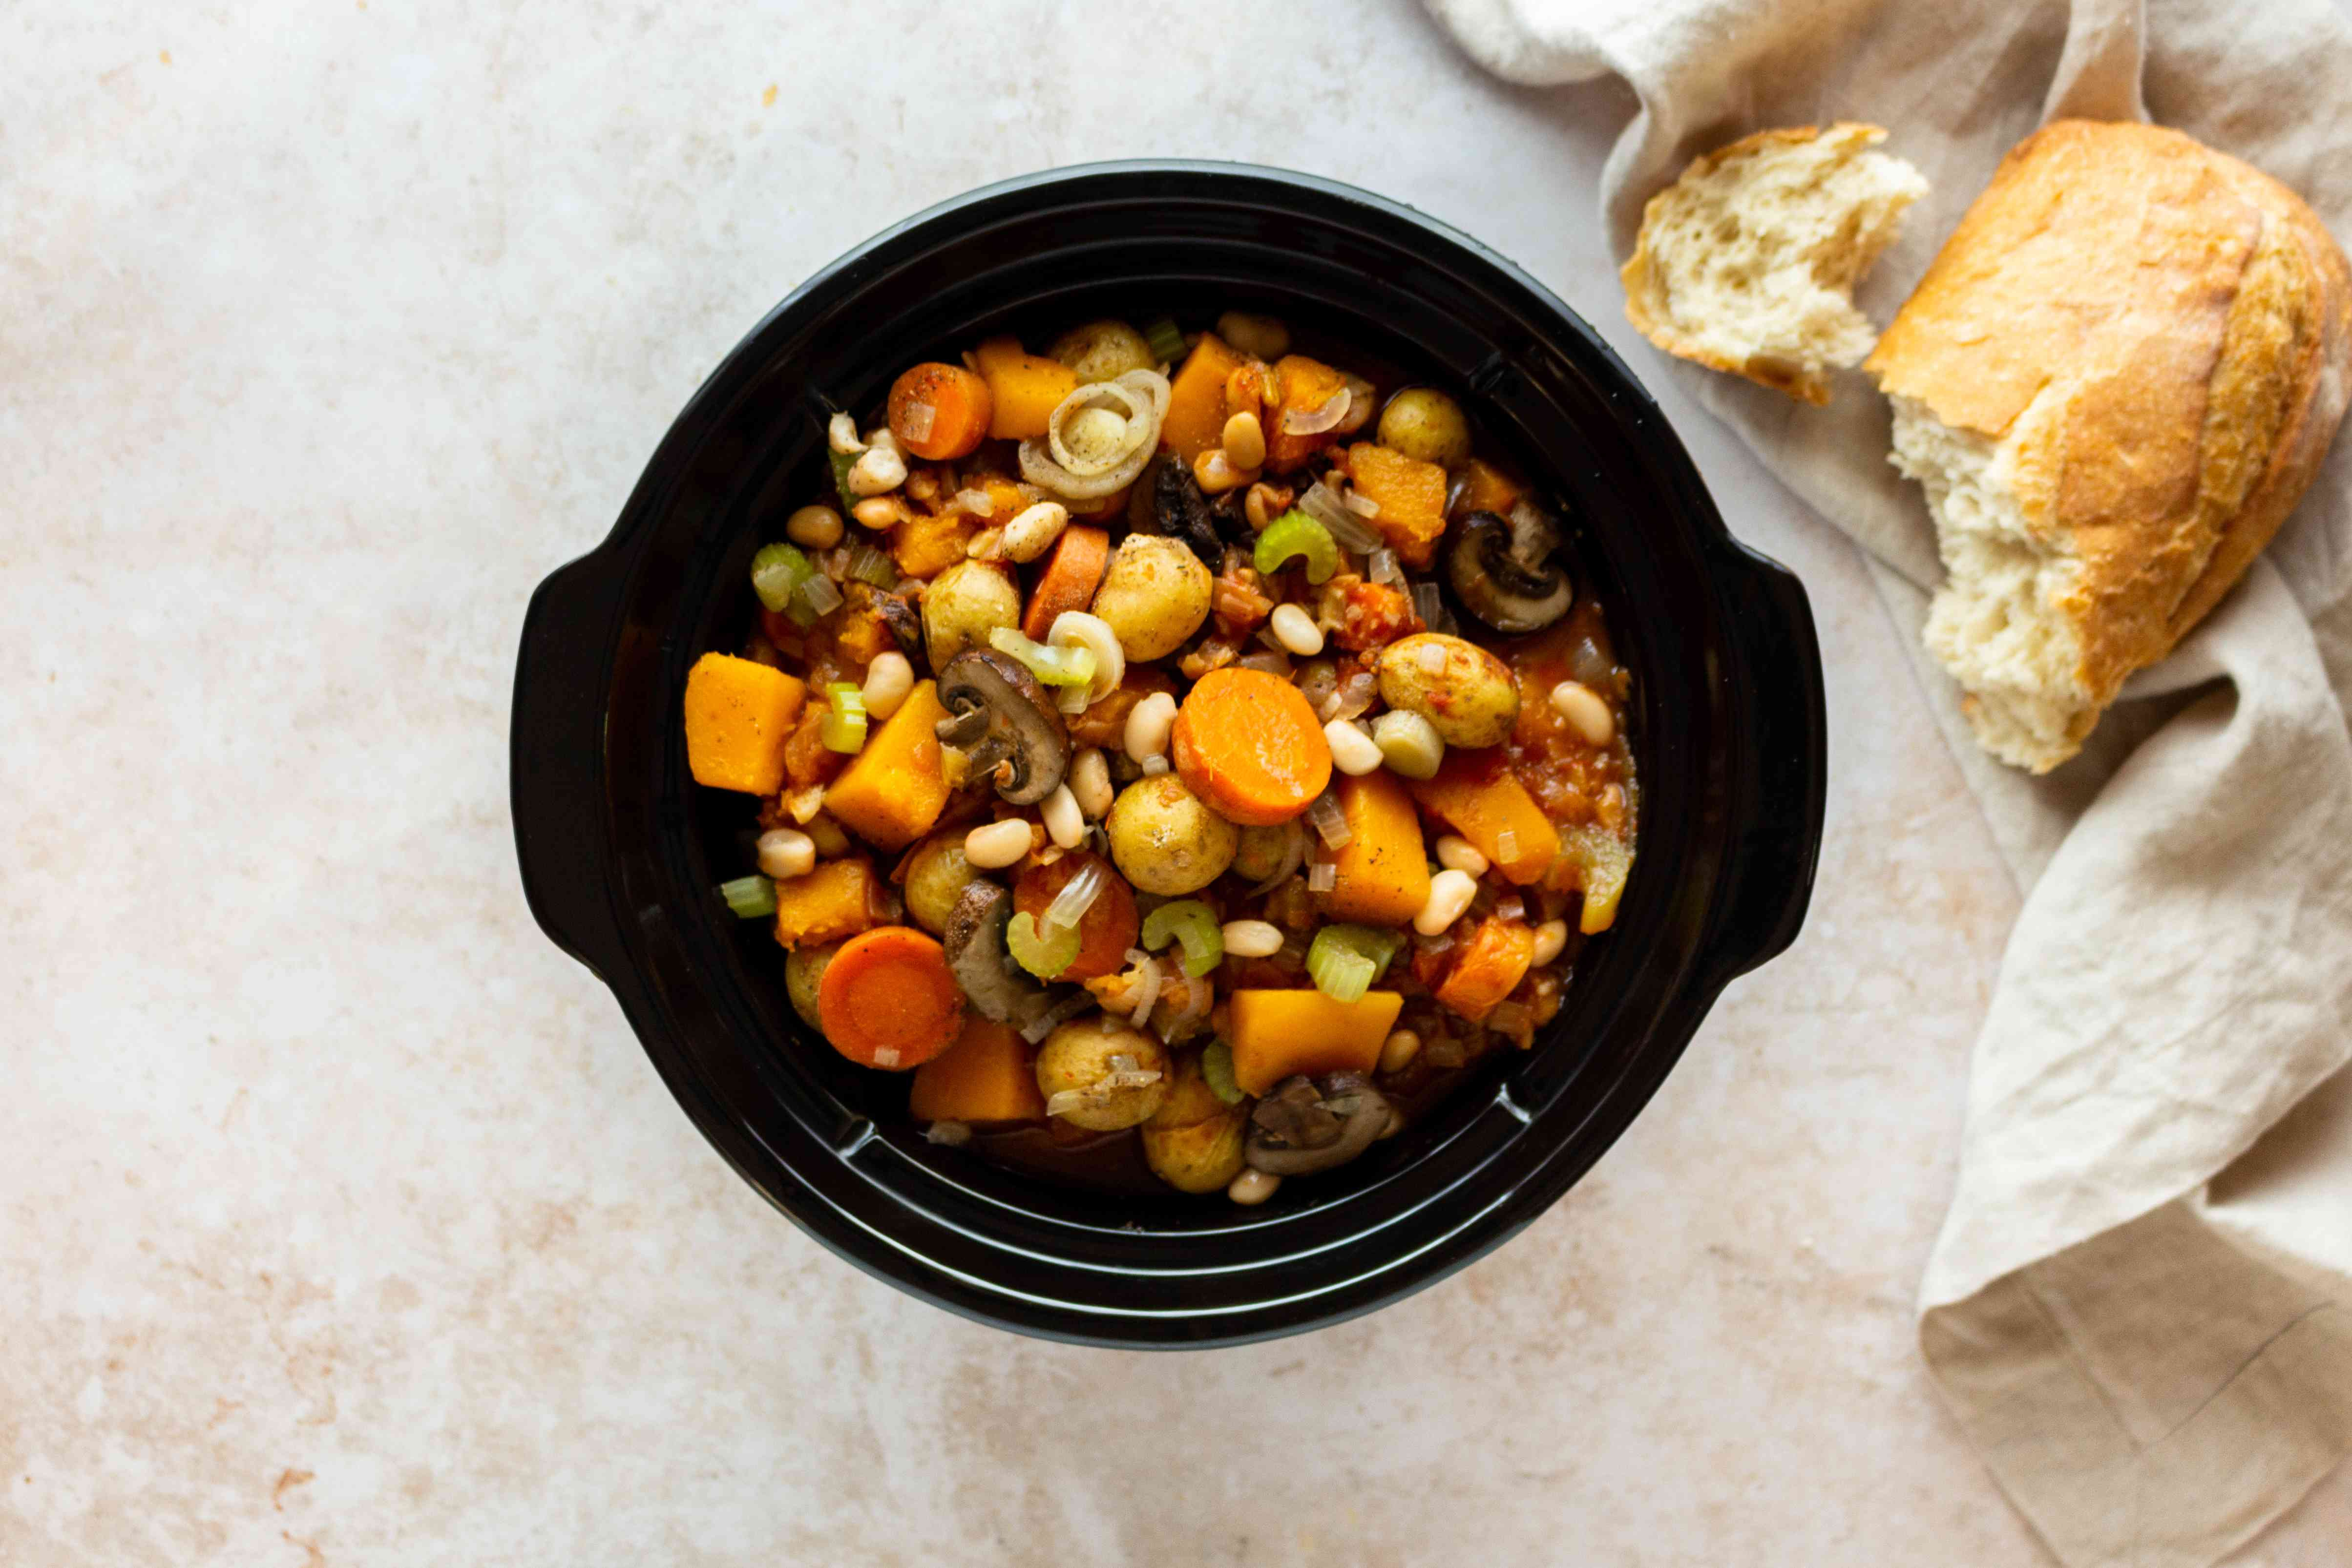 Finished slow cooker vegetable stew with piece of bread